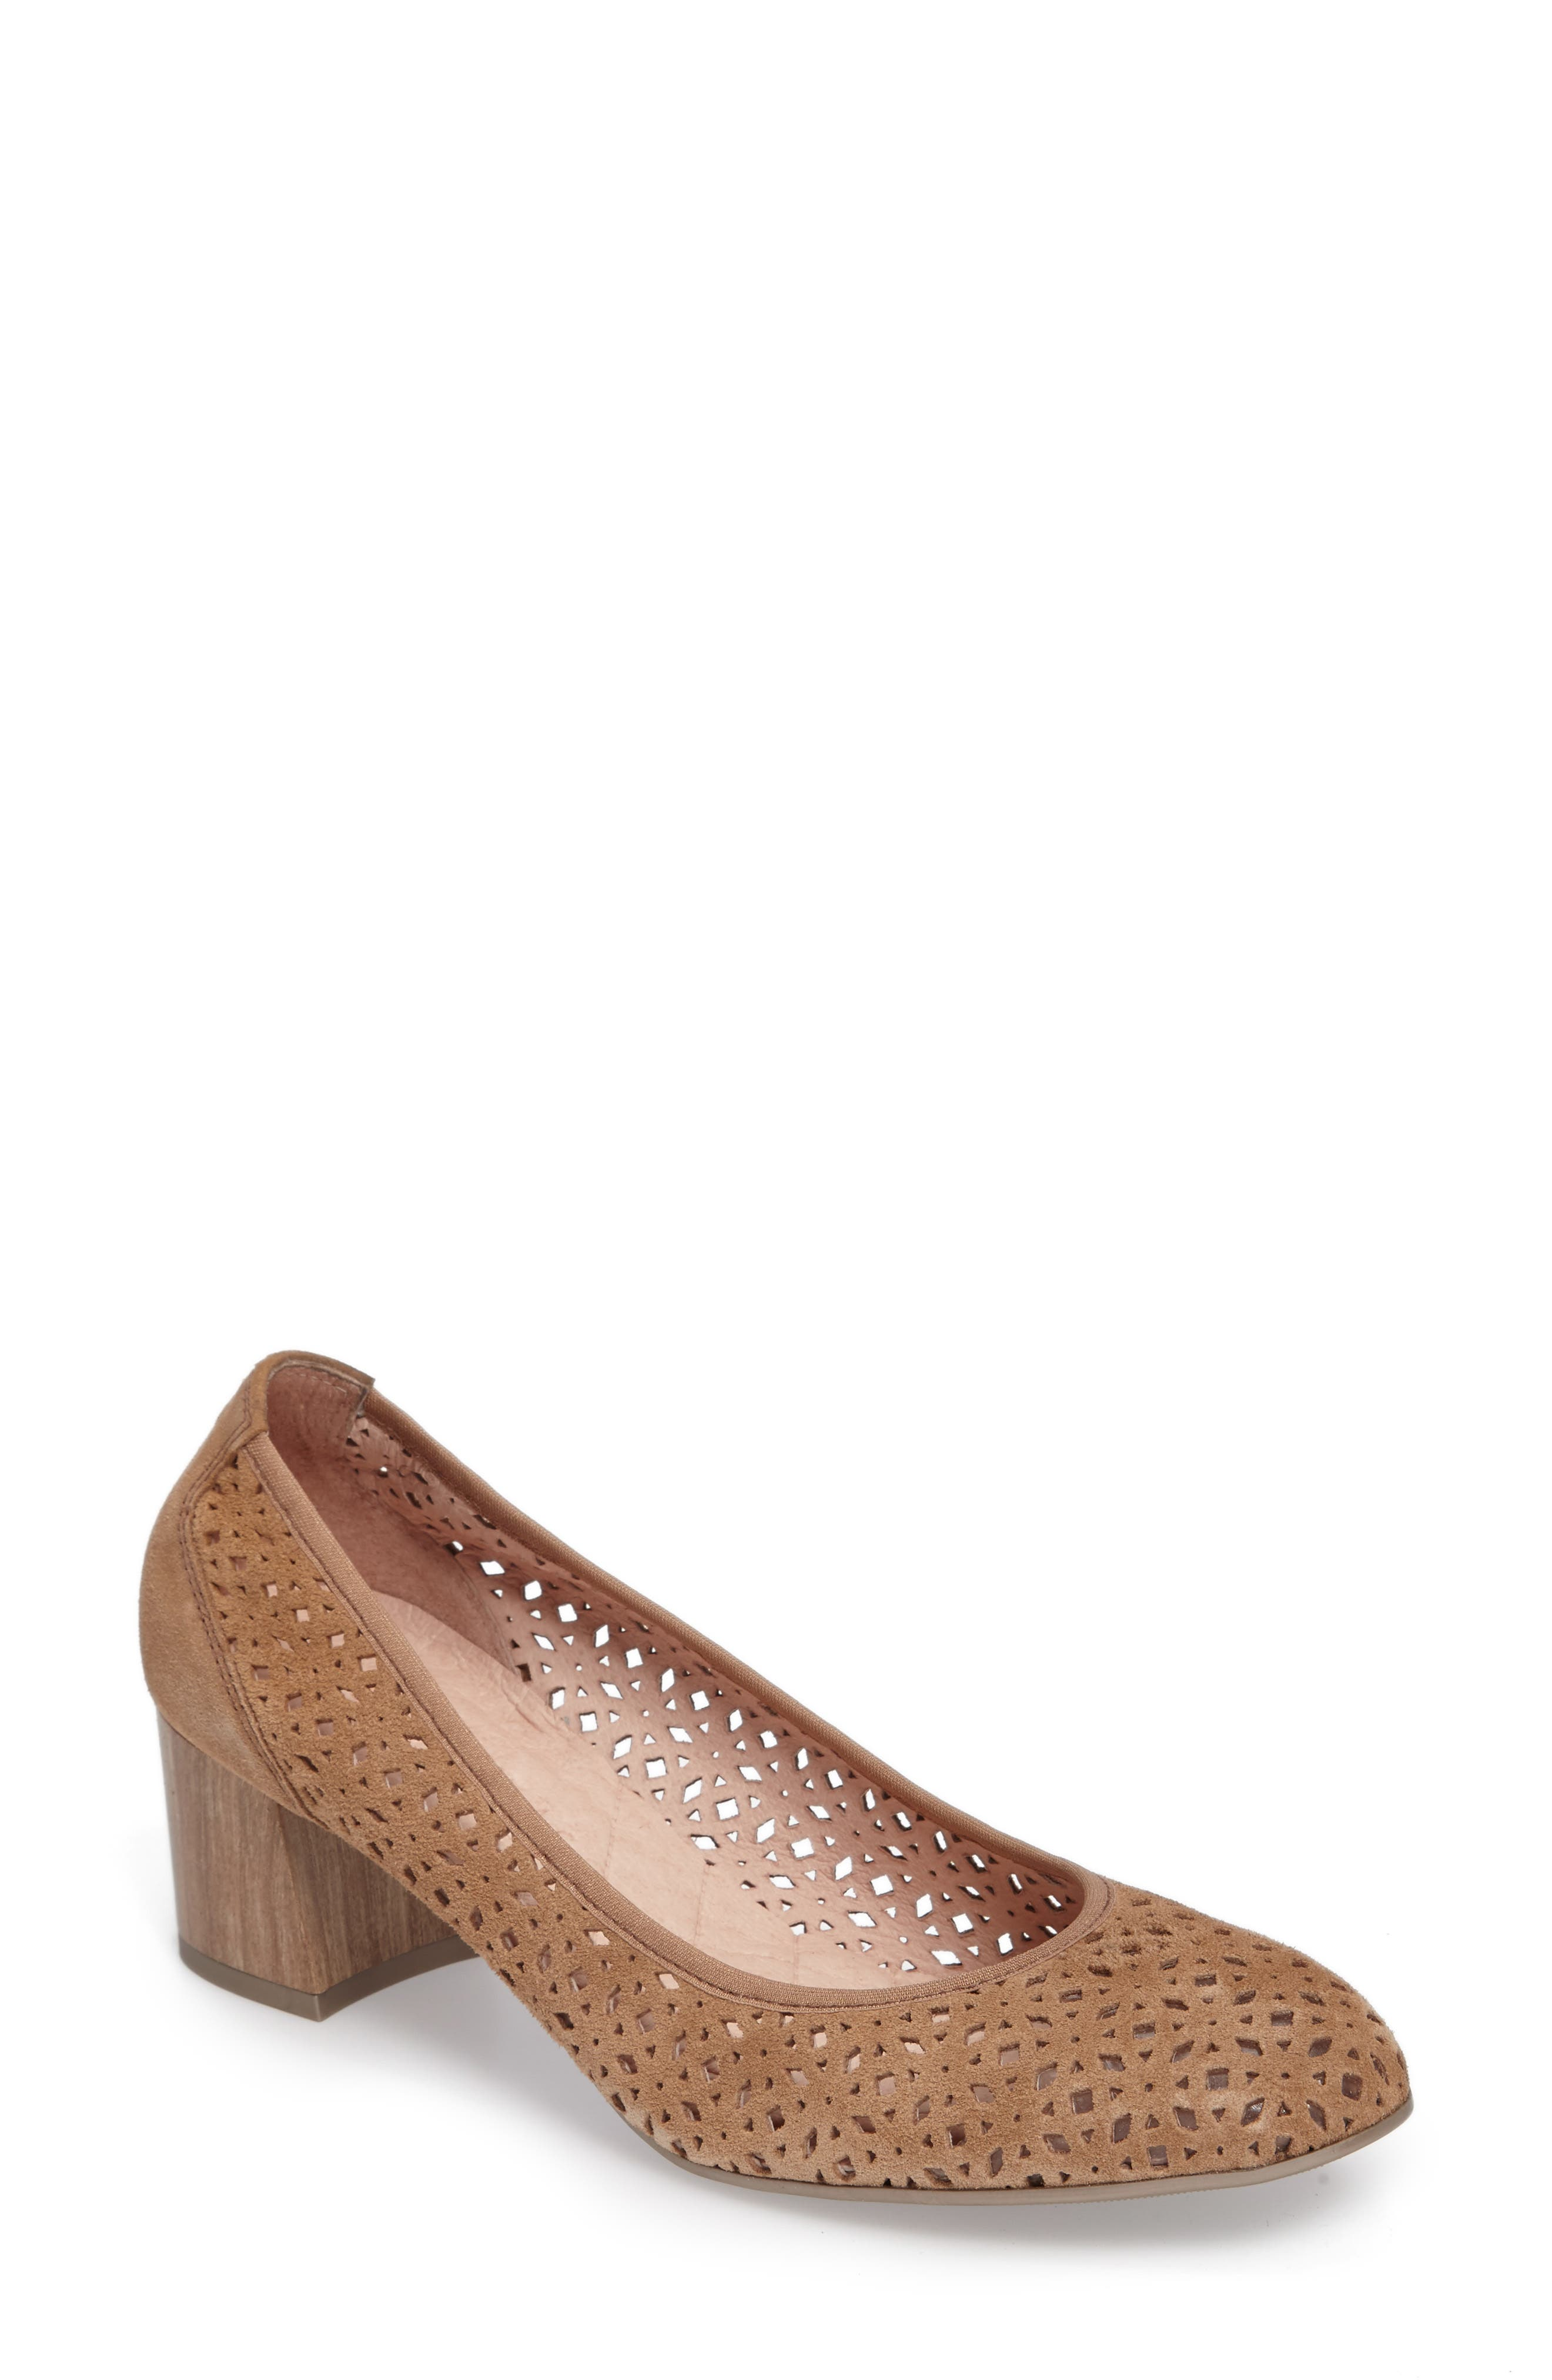 Jovanna Perforated Pump,                         Main,                         color, Velour Avena Leather